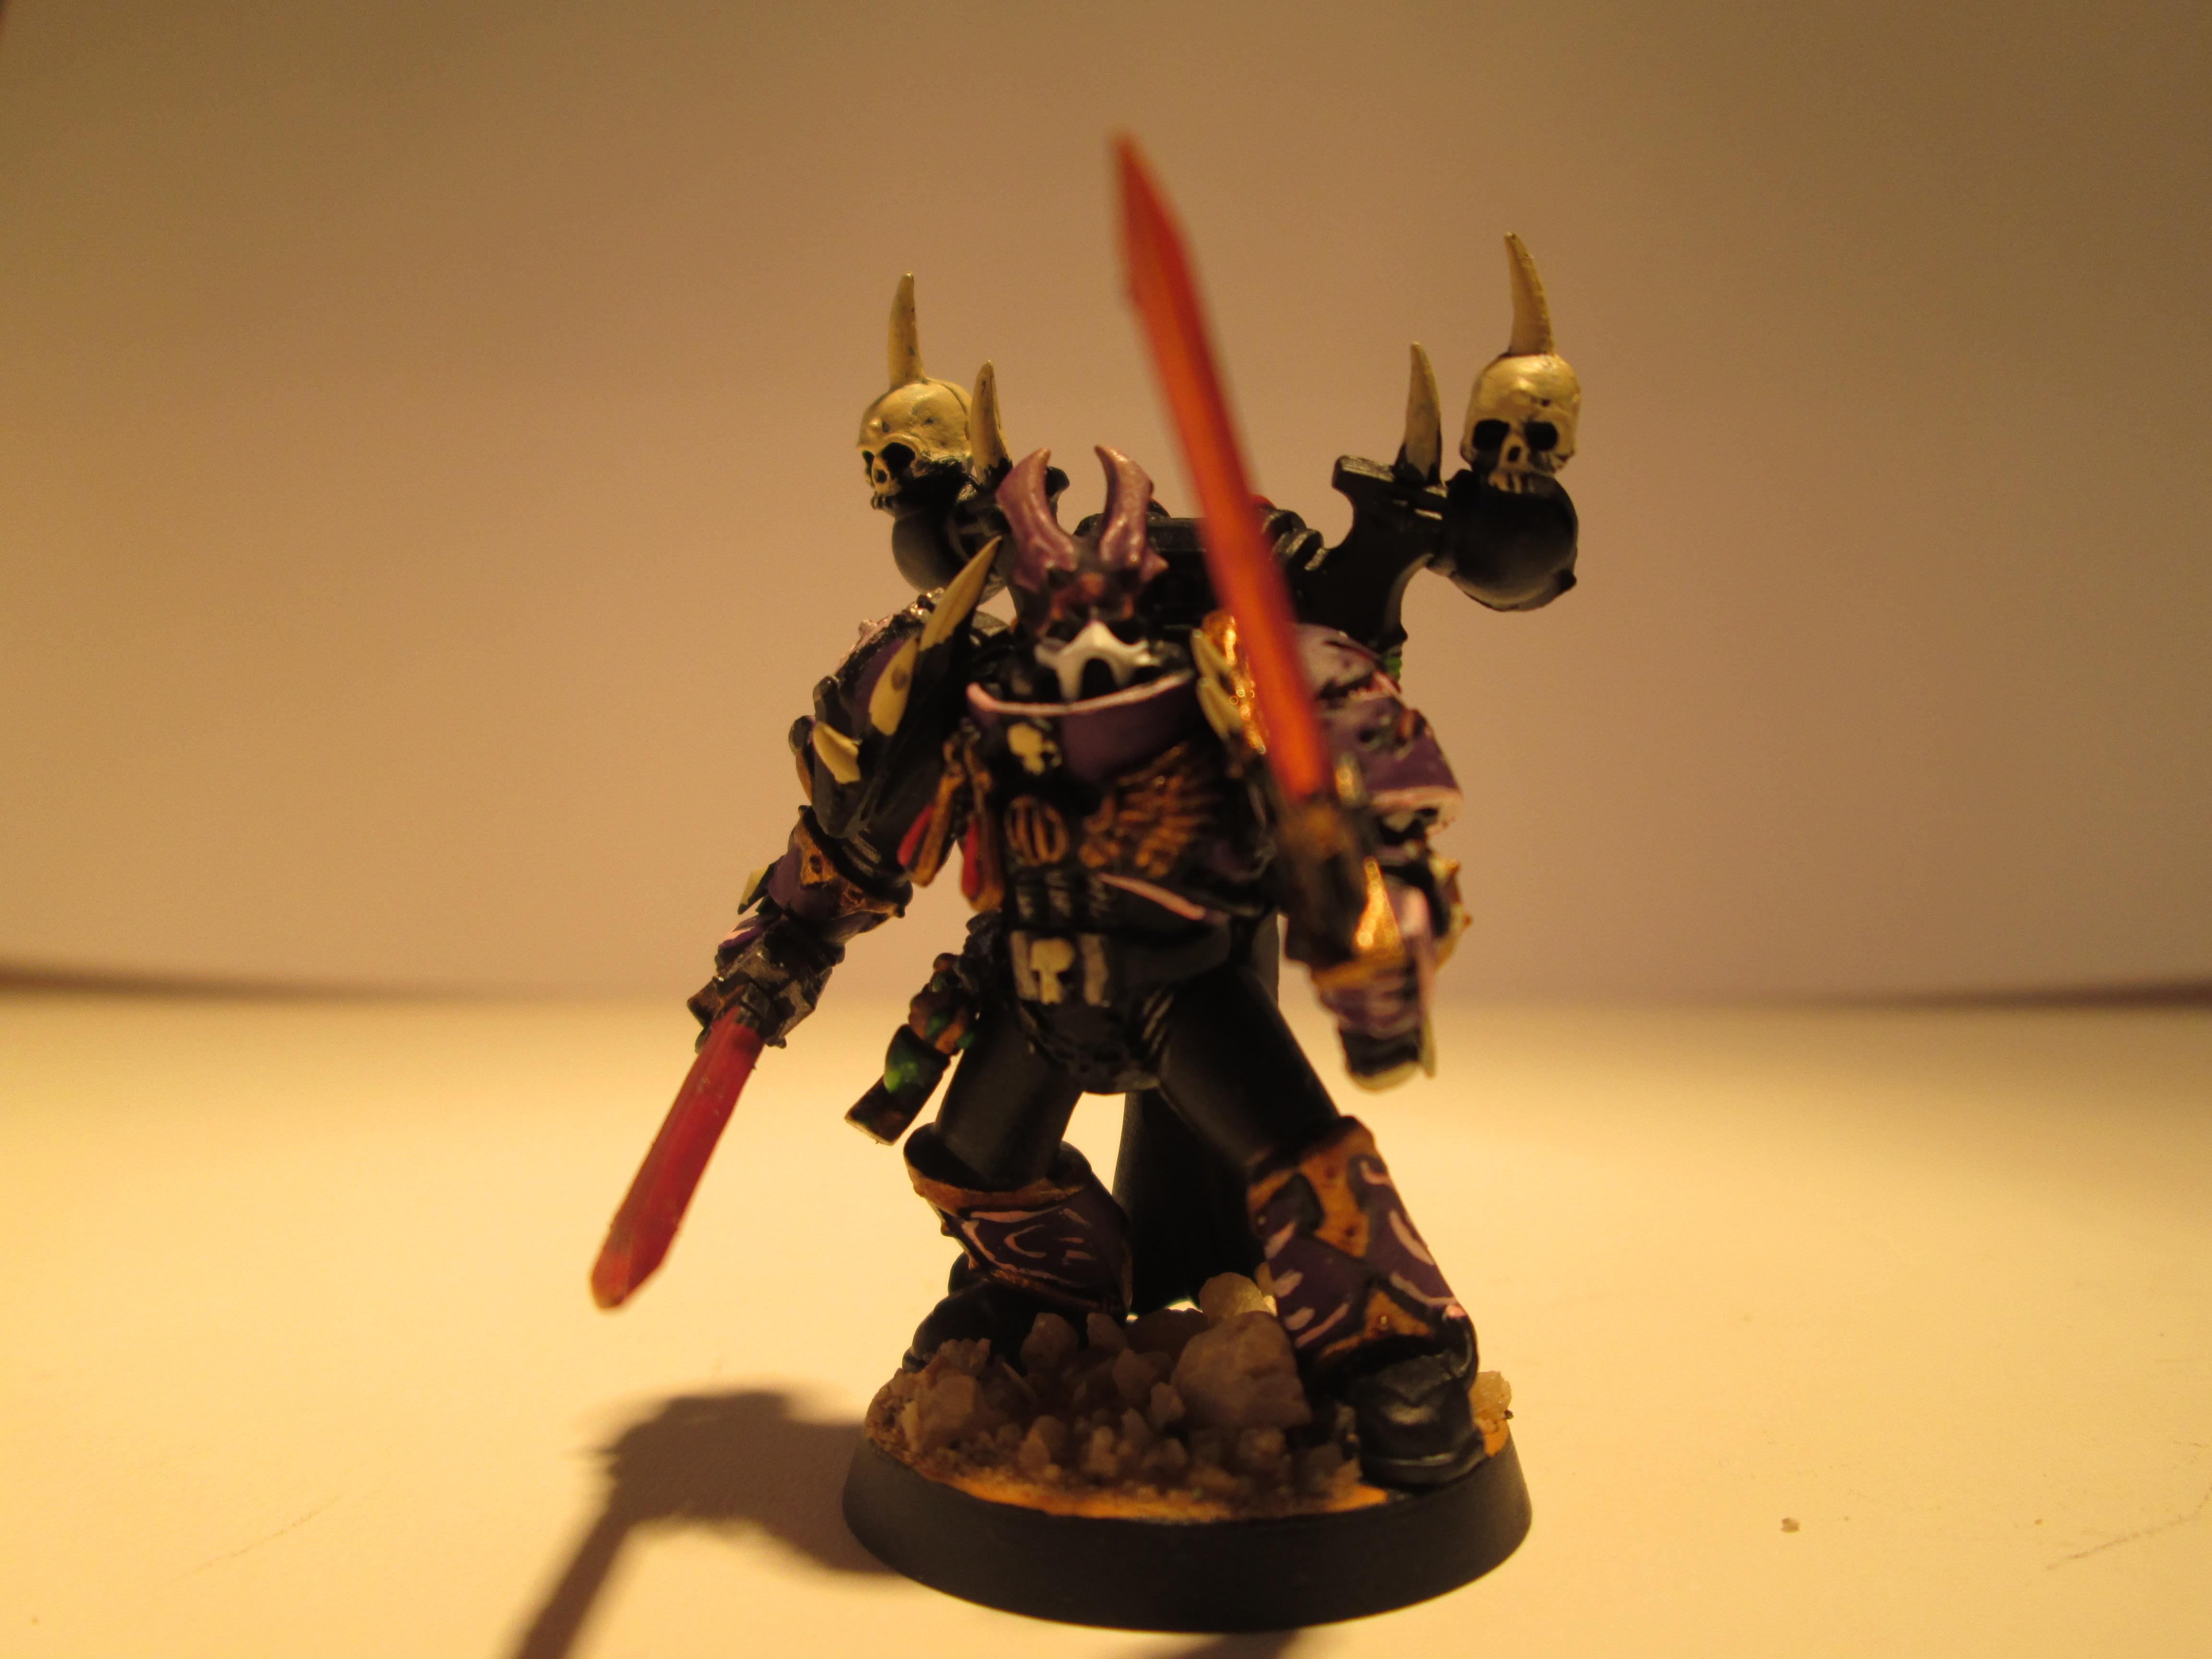 Champion, Chaos Space Marines, Emperor's Children, Mark Of Slaanesh, Noise Marines, Slaanesh